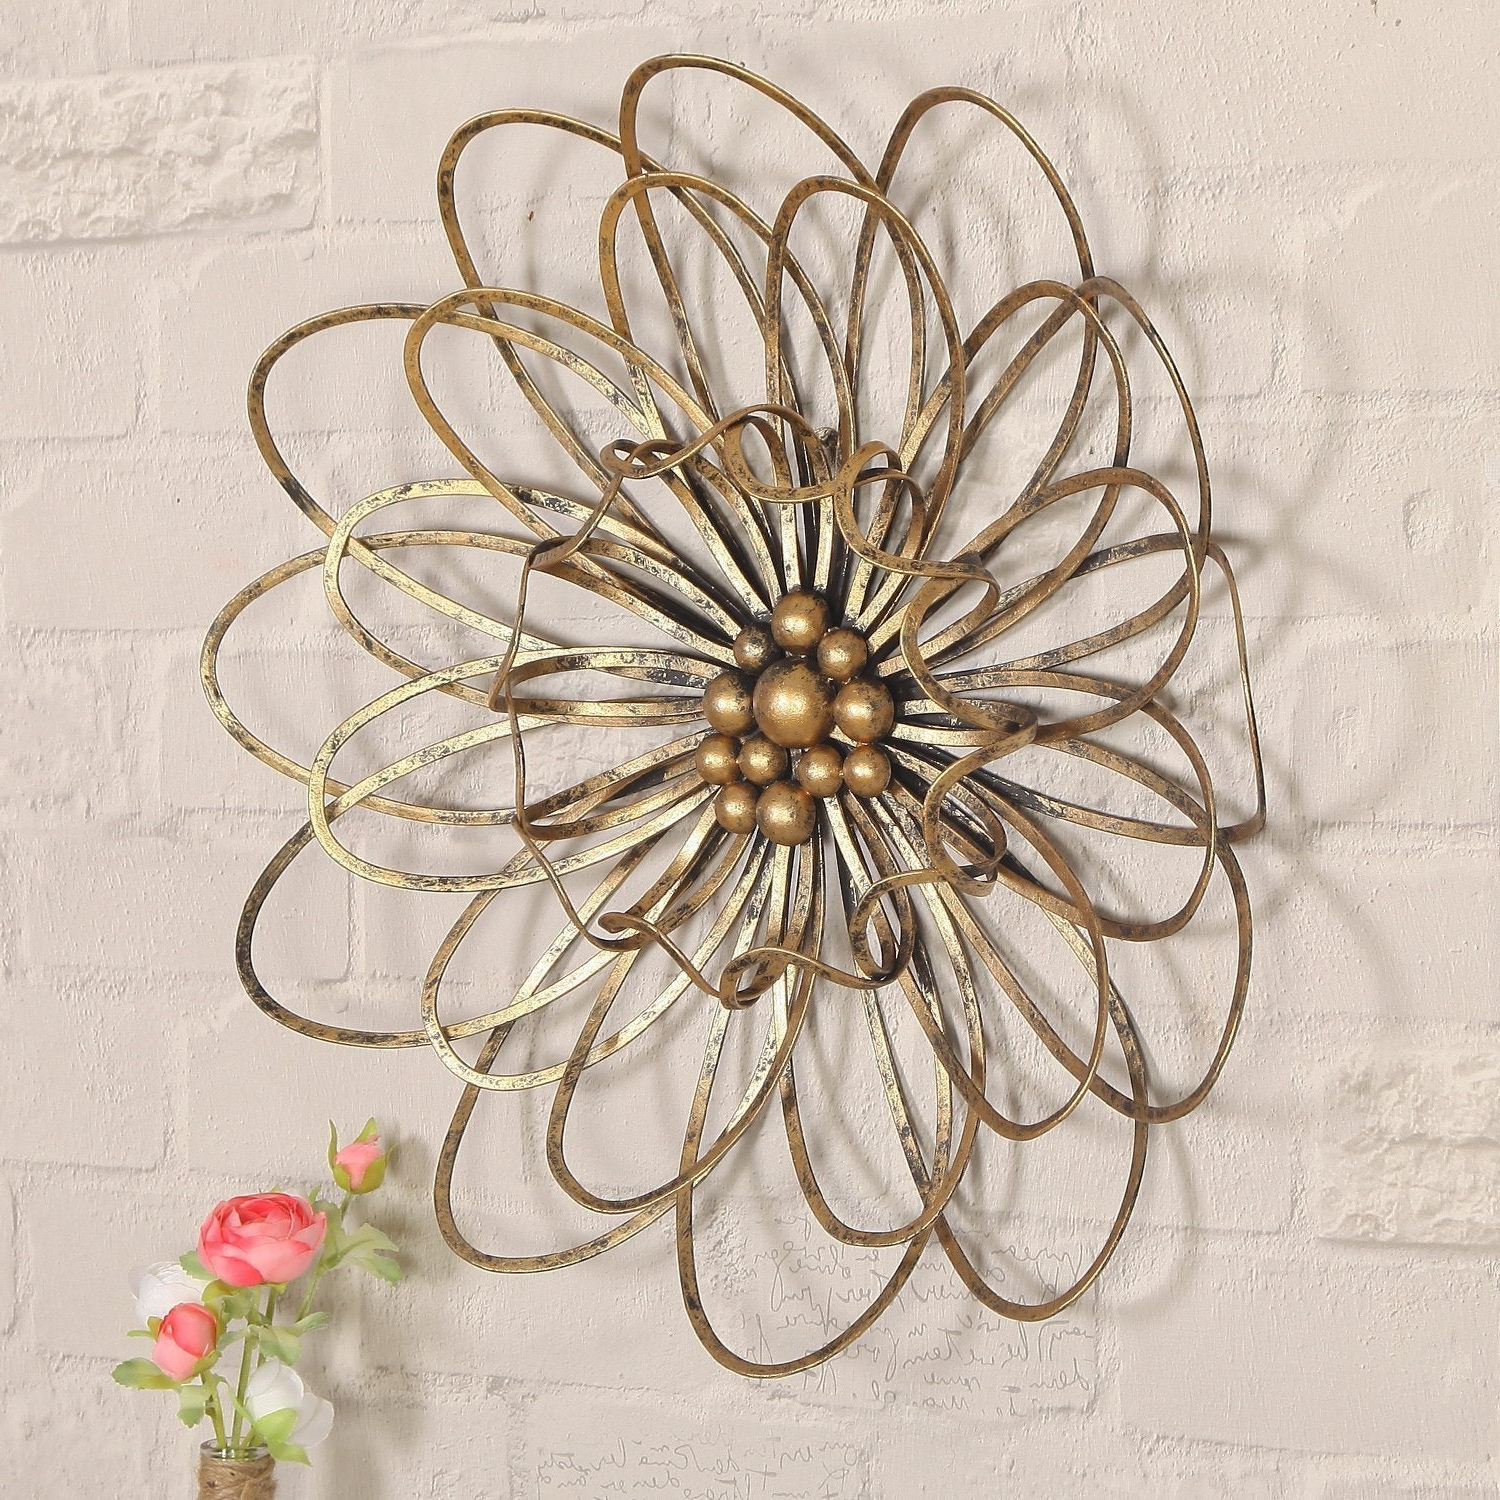 Most Up To Date Shop Flower Urban Design Metal Wall Decor – Free Shipping Today Pertaining To Flower Urban Design Metal Wall Decor (Gallery 8 of 20)